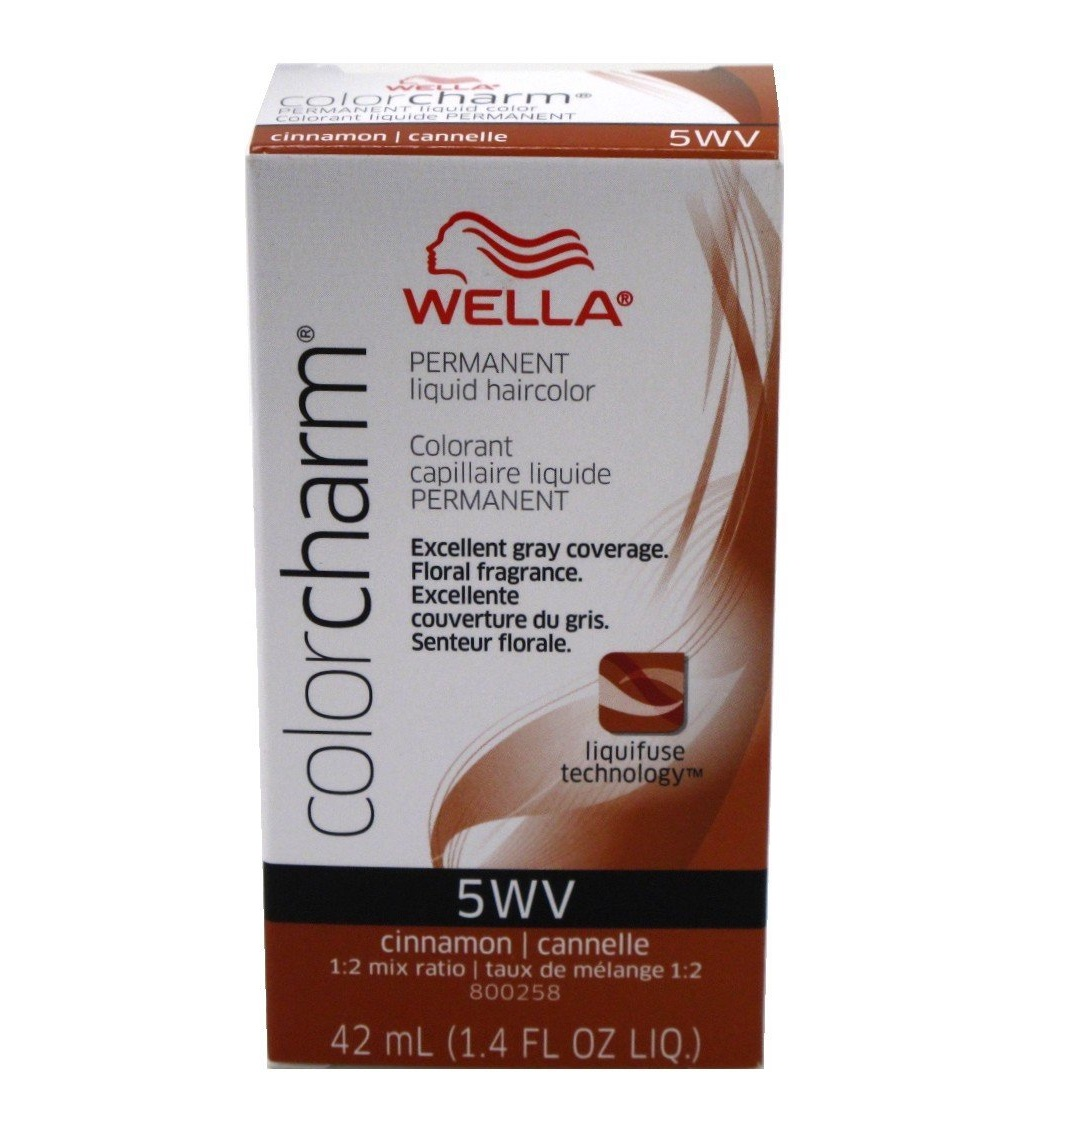 Wella Color Charm Liquid Haircolor 5wv Cinnamon 14 Oz Pharmapacks